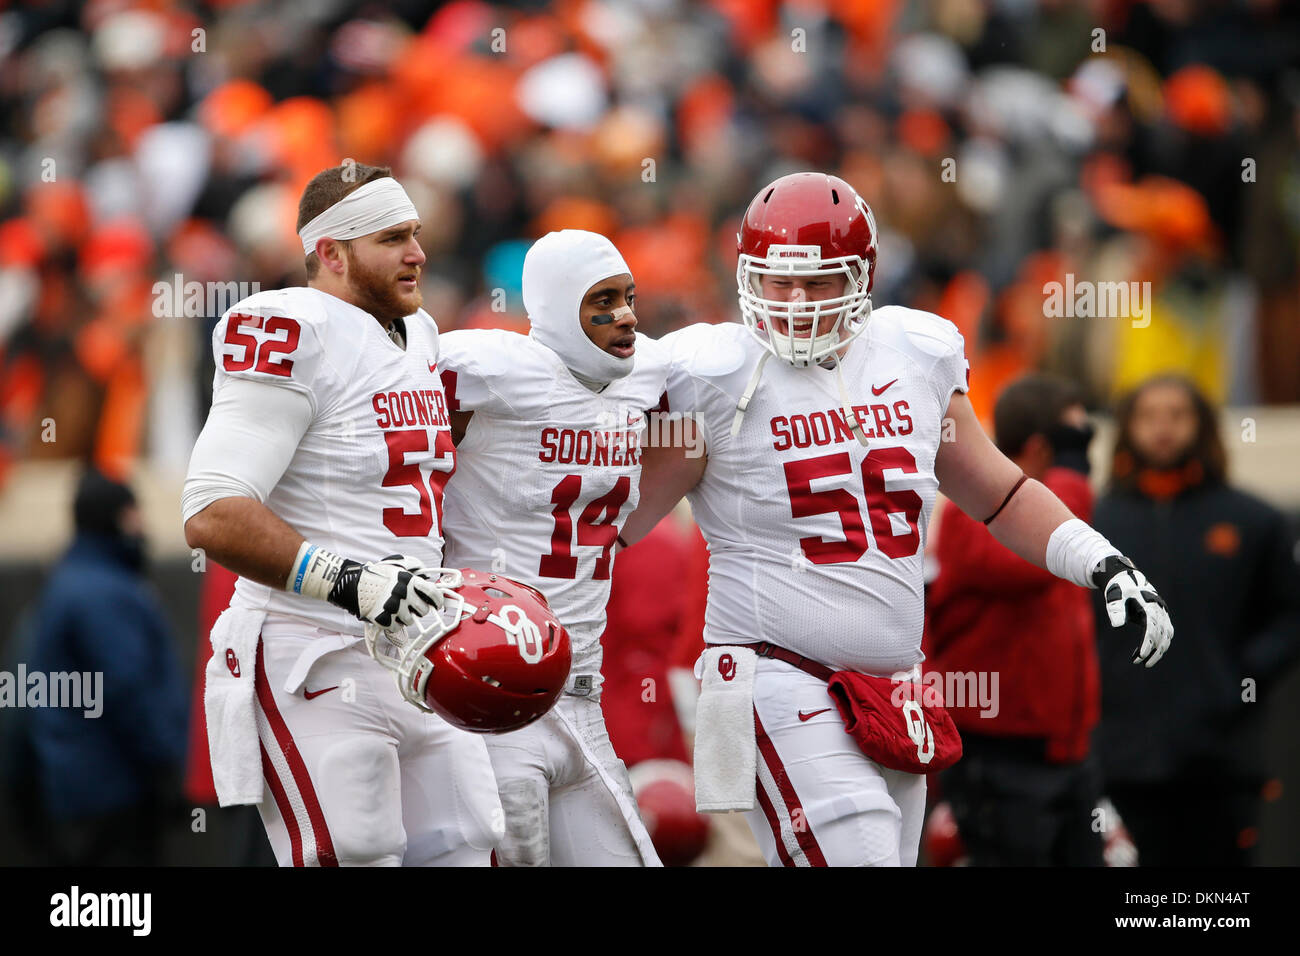 Stillwater, Oklahoma, USA. 7th Dec, 2013. December 7, 2103: Oklahoma Sooners offensive linesman John-Philip Hughes (52) and offensive linesman Ty Darlington (56) help defensive back Aaron Colvin (14) off the field after the NCAA football game between the Oklahoma Sooners and the Oklahoma State Cowboys at Boone Pickens Stadium in Stillwater, OK. The Sooners defeated the Cowboys 33-24. Credit:  csm/Alamy Live News - Stock Image